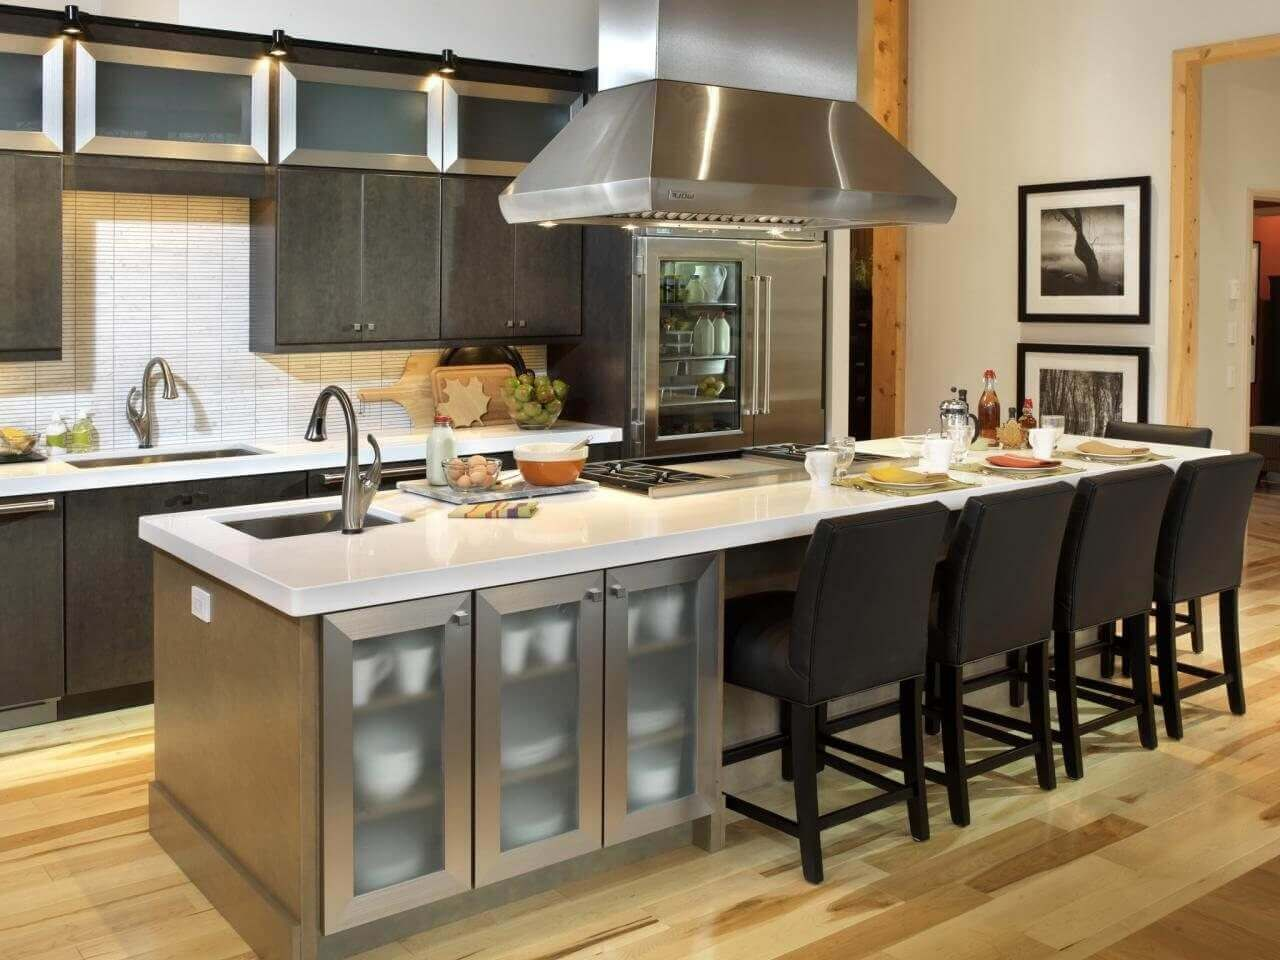 68+Deluxe Custom Kitchen Island Ideas (Jaw Dropping